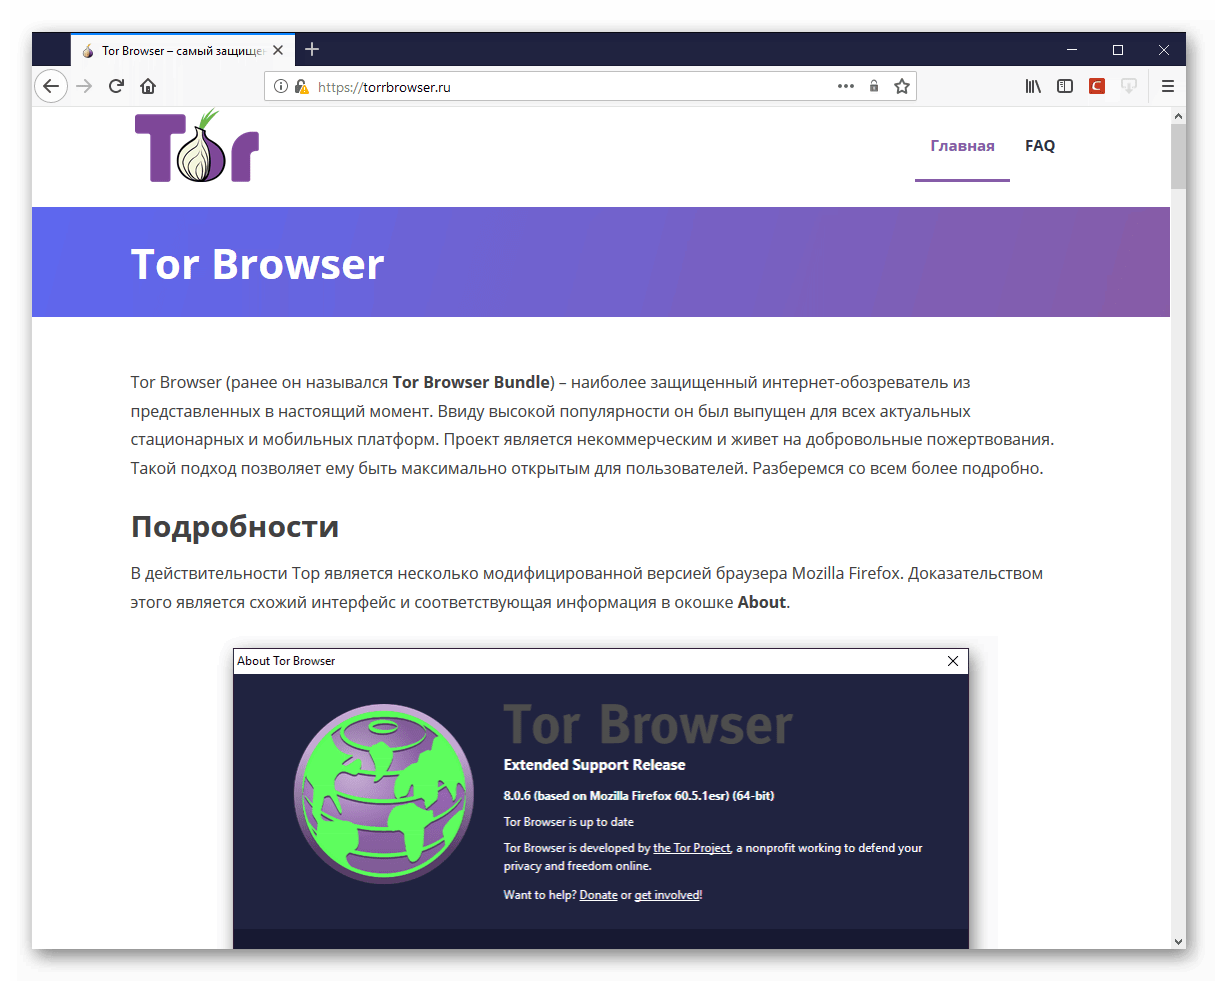 Плагин firefox для tor browser gydra как качать с tor browser hydra